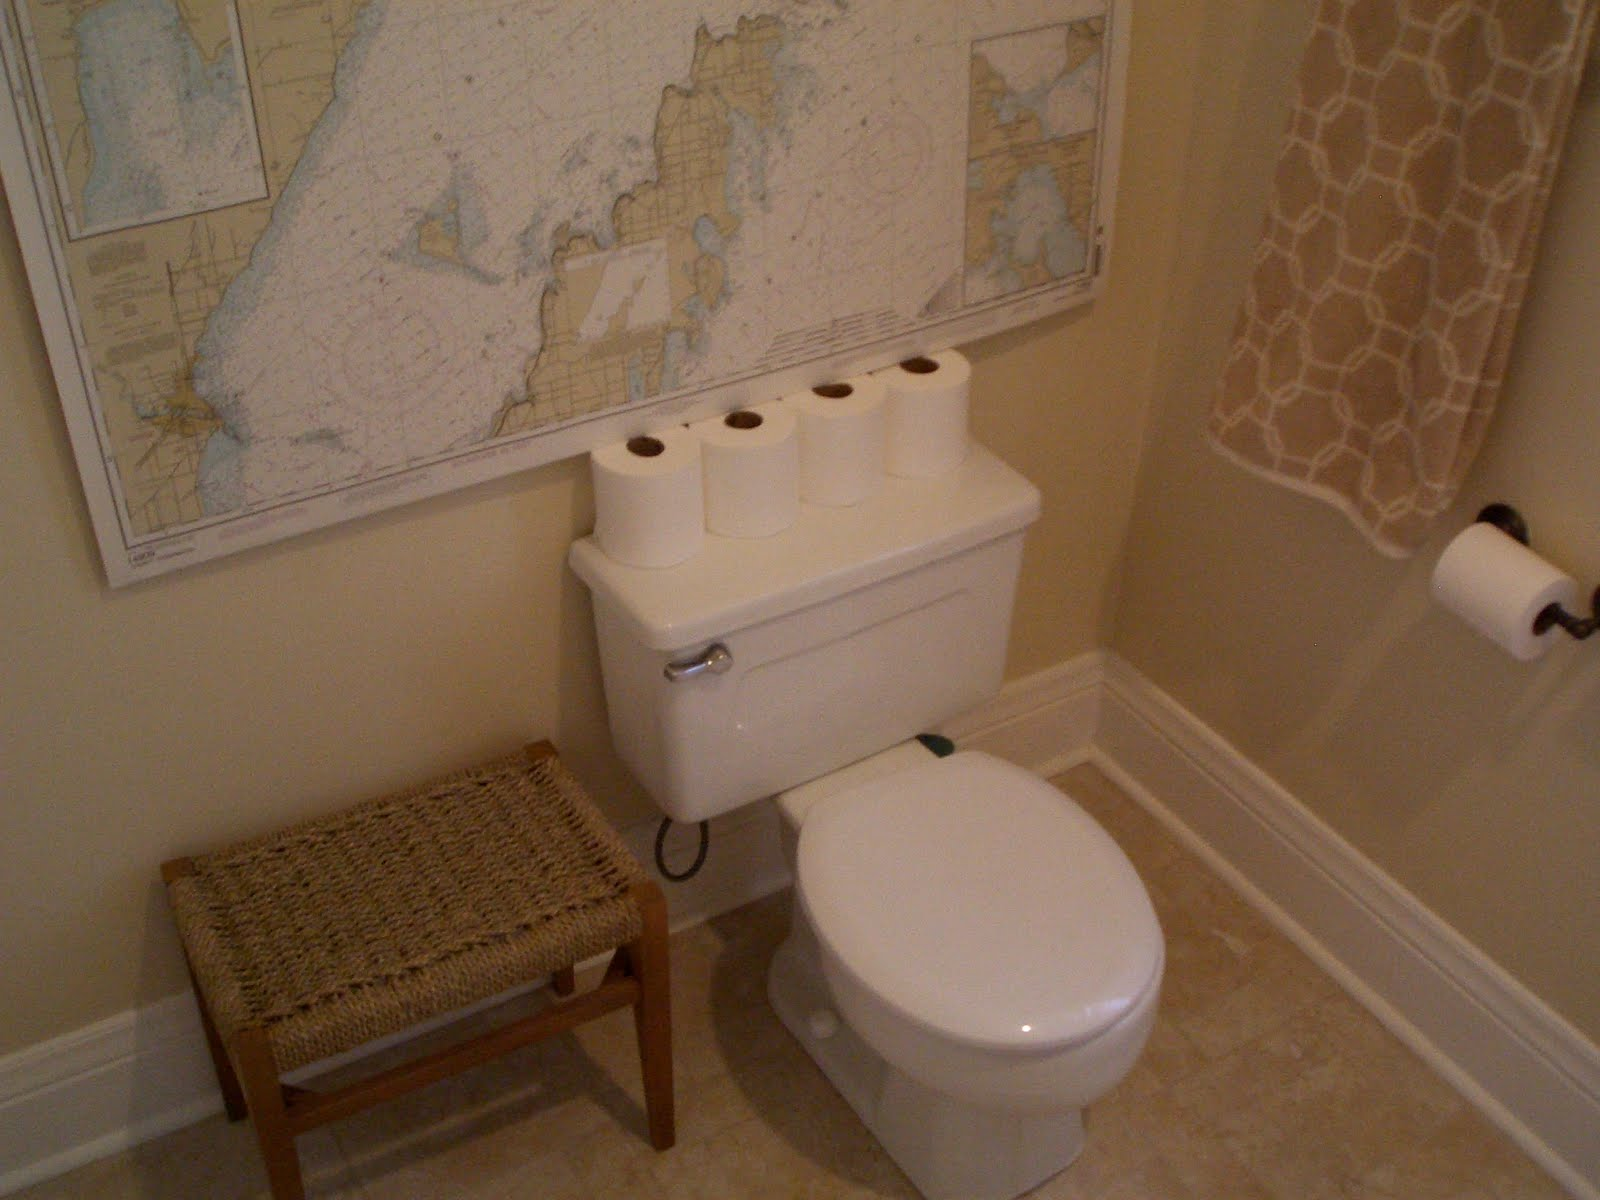 cream city and sugar redecorating the bathroom downstairs done